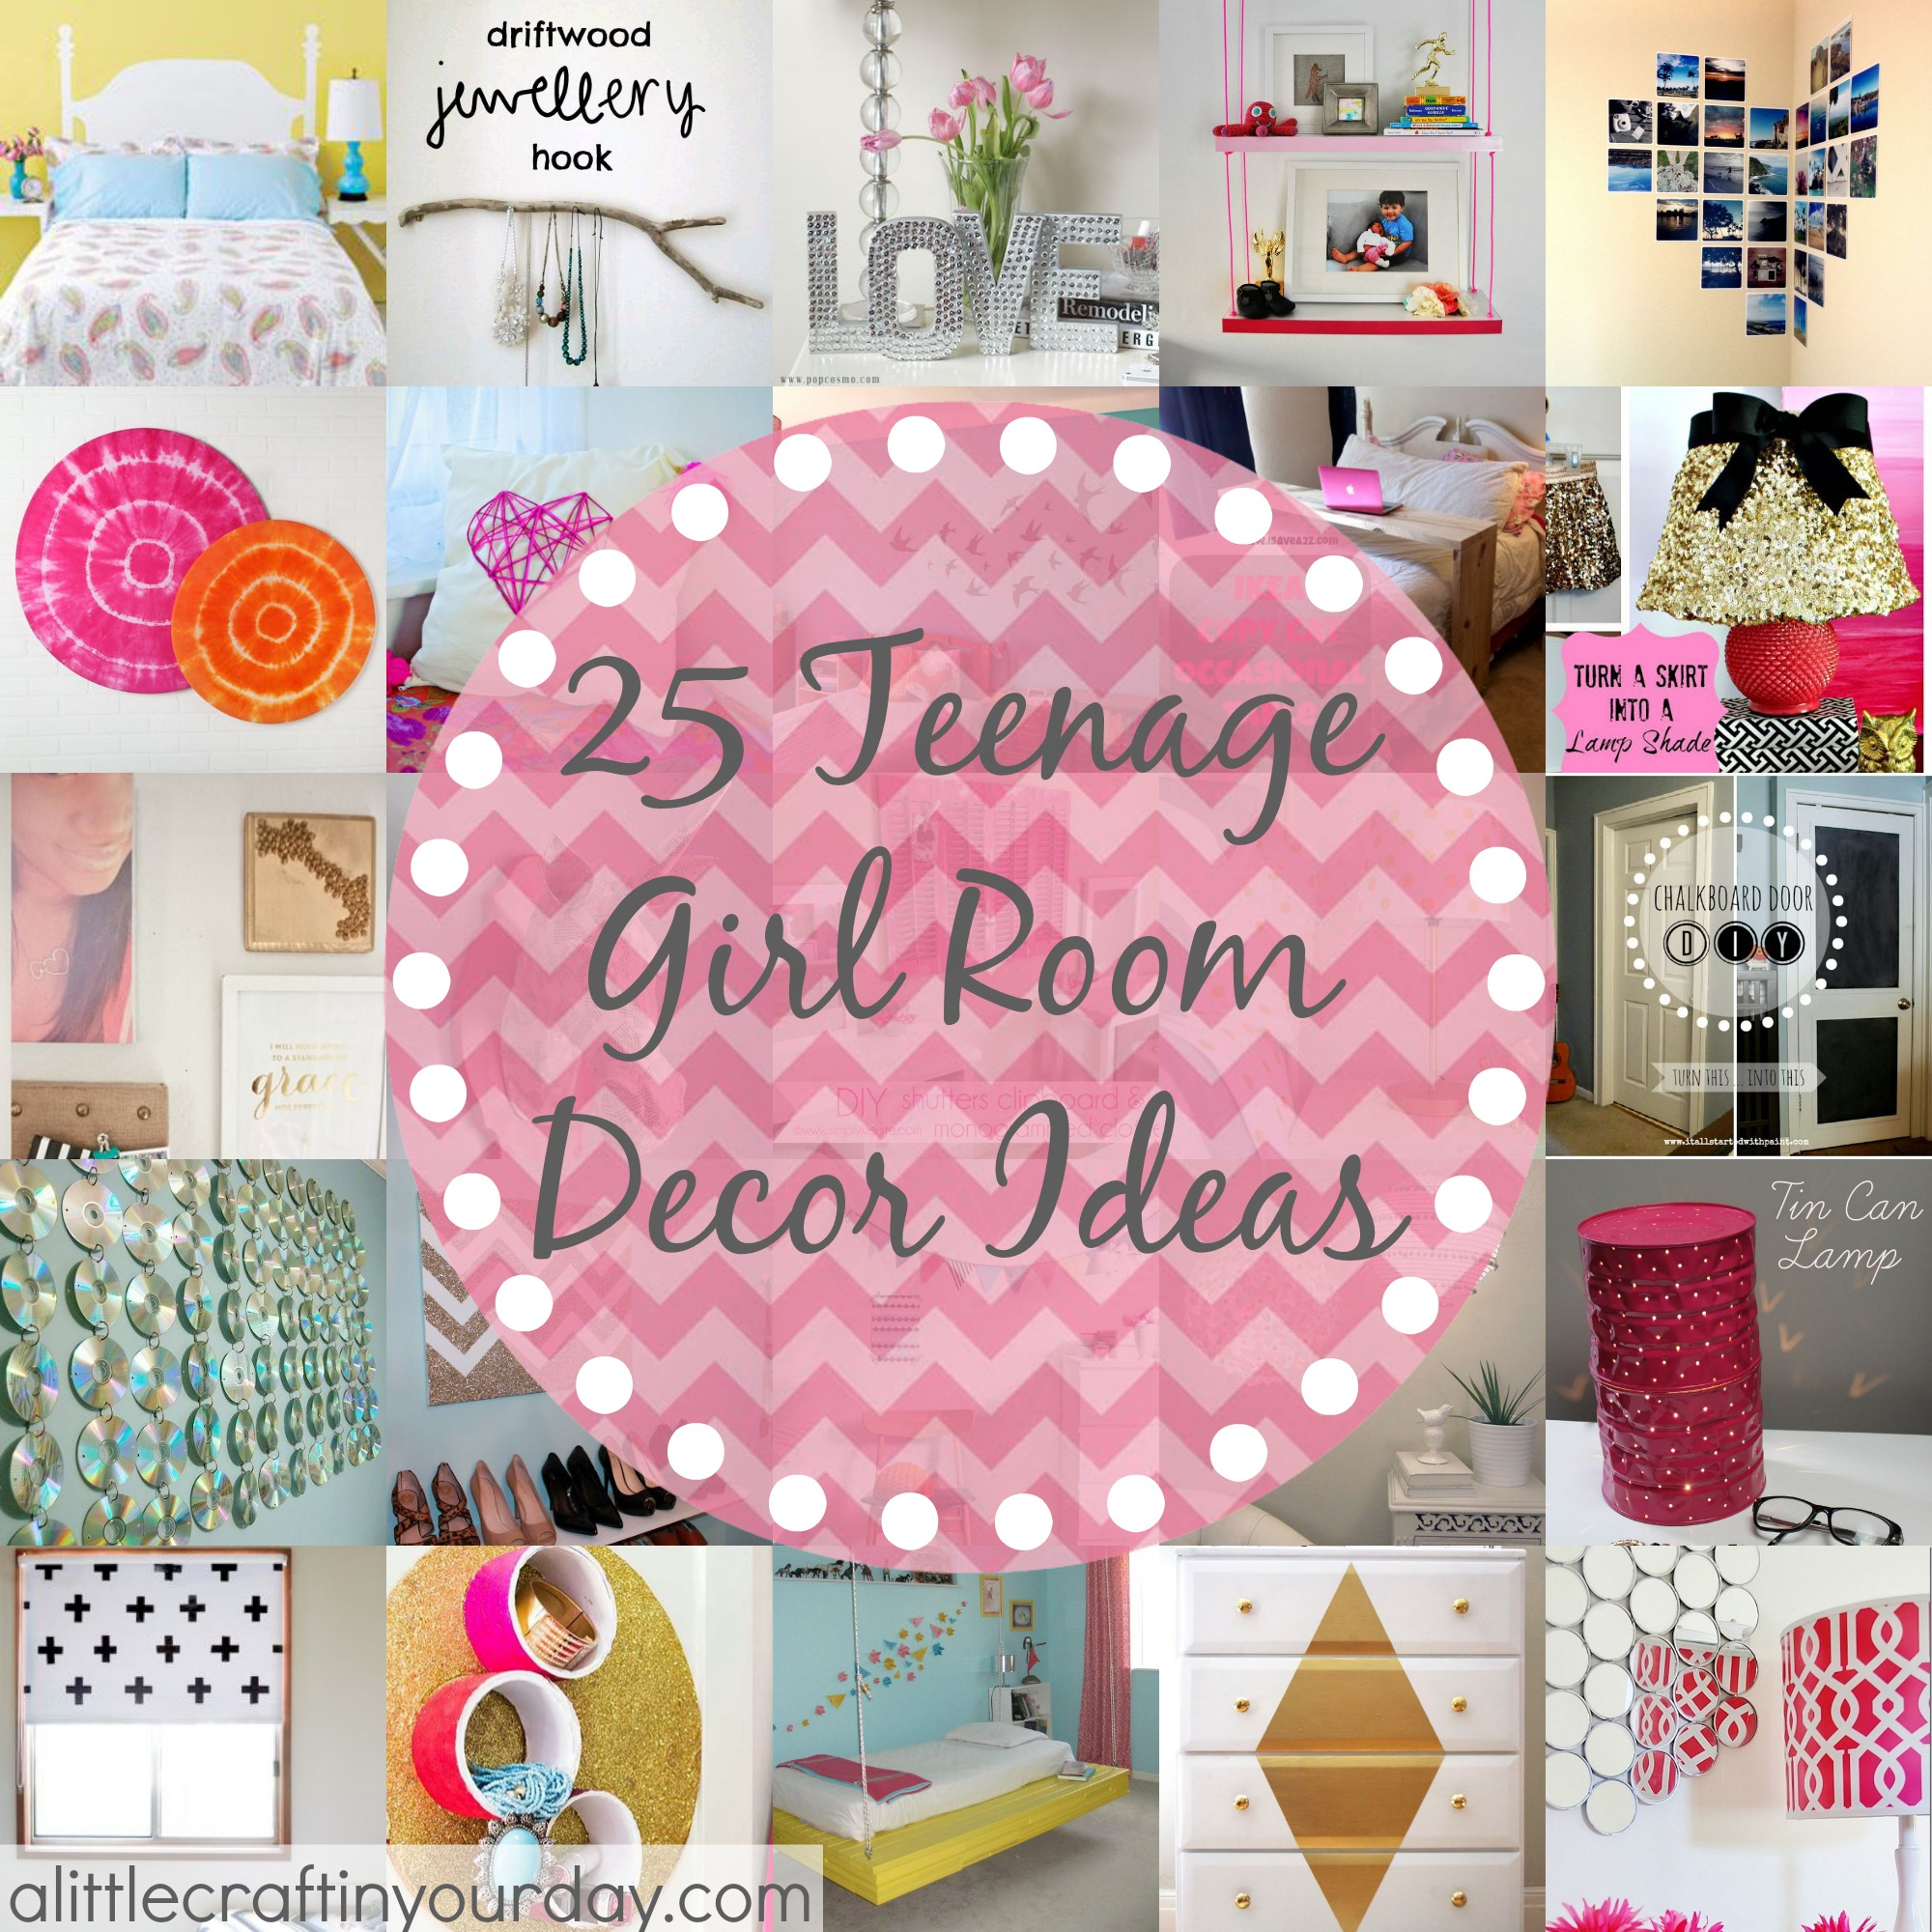 4 30   25 More Teenage Girl Room Decor Ideas. 25 More Teenage Girl Room Decor Ideas   A Little Craft In Your Day